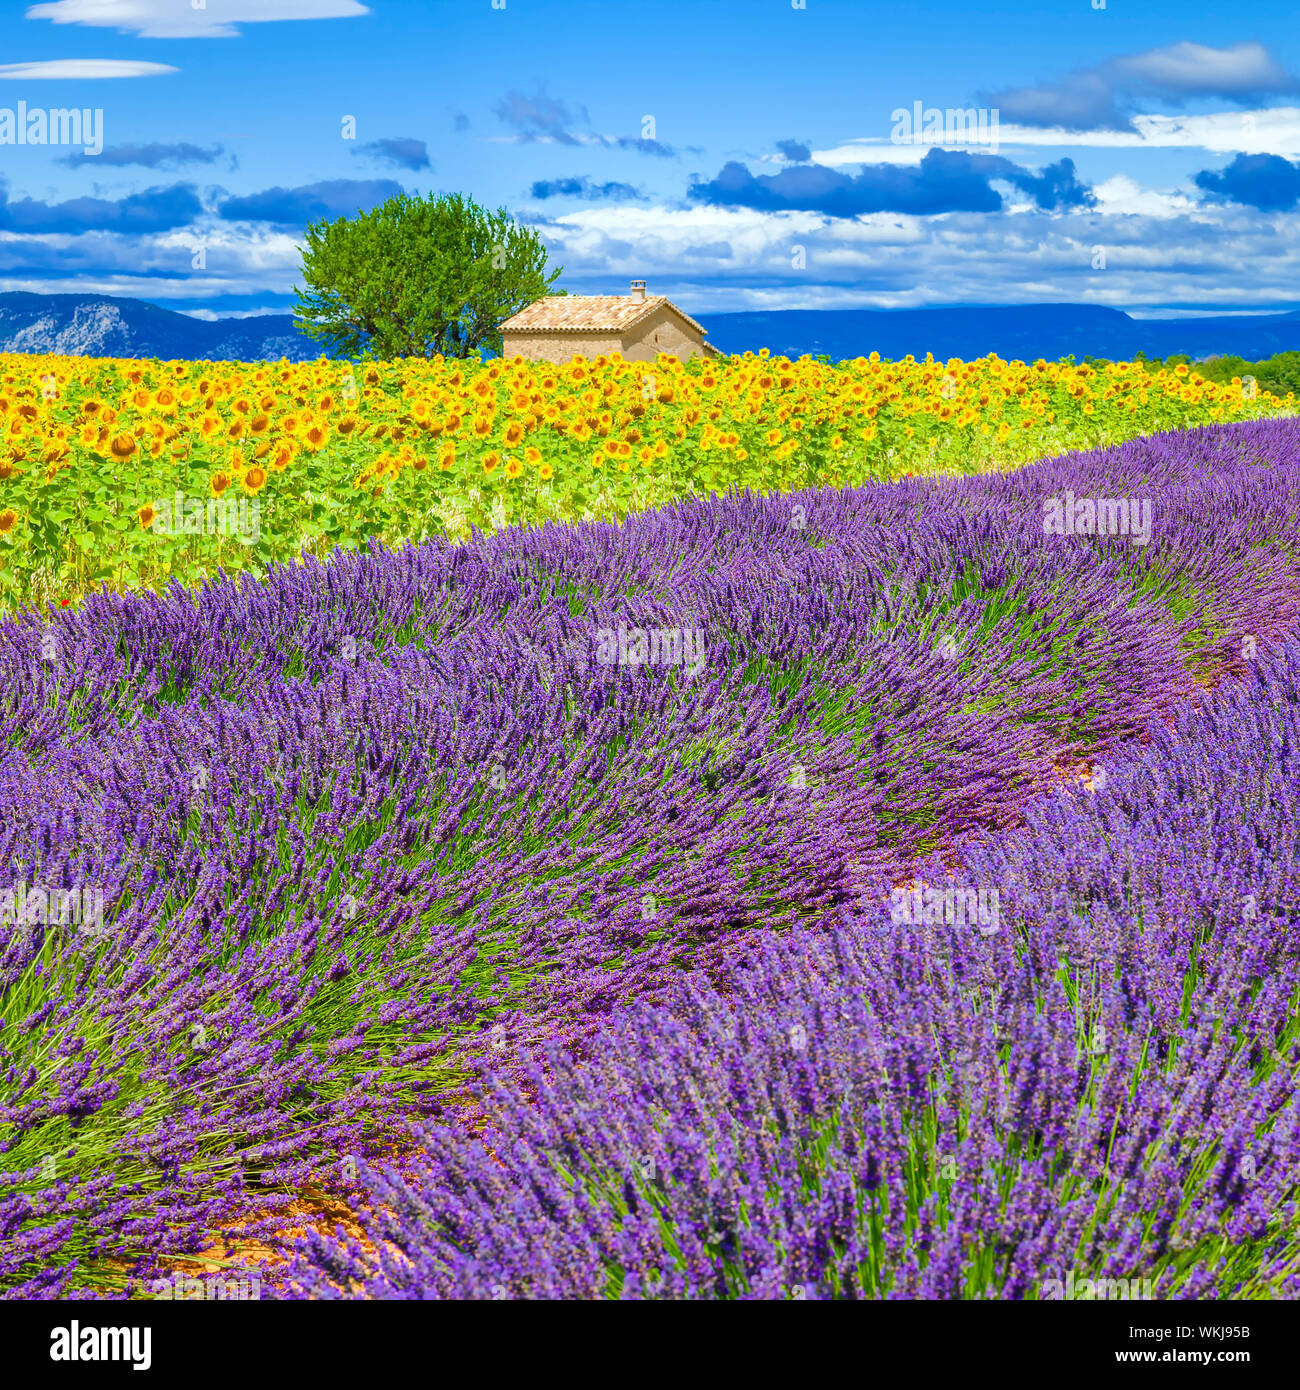 Lavender and sunflower field with tree in France Stock Photo